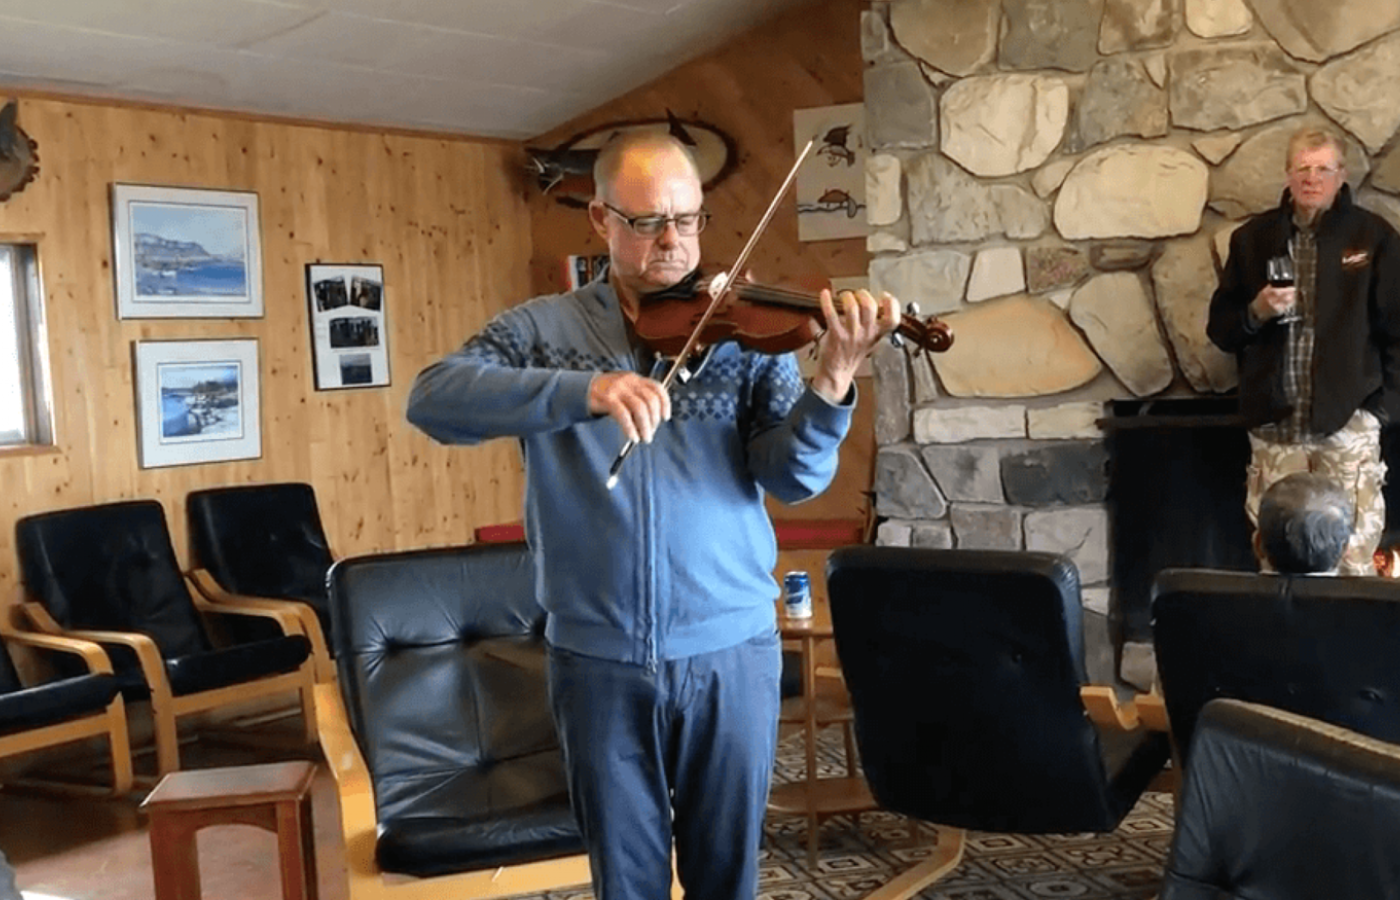 A man plays violin for other guests at an Arctic fishing lodge